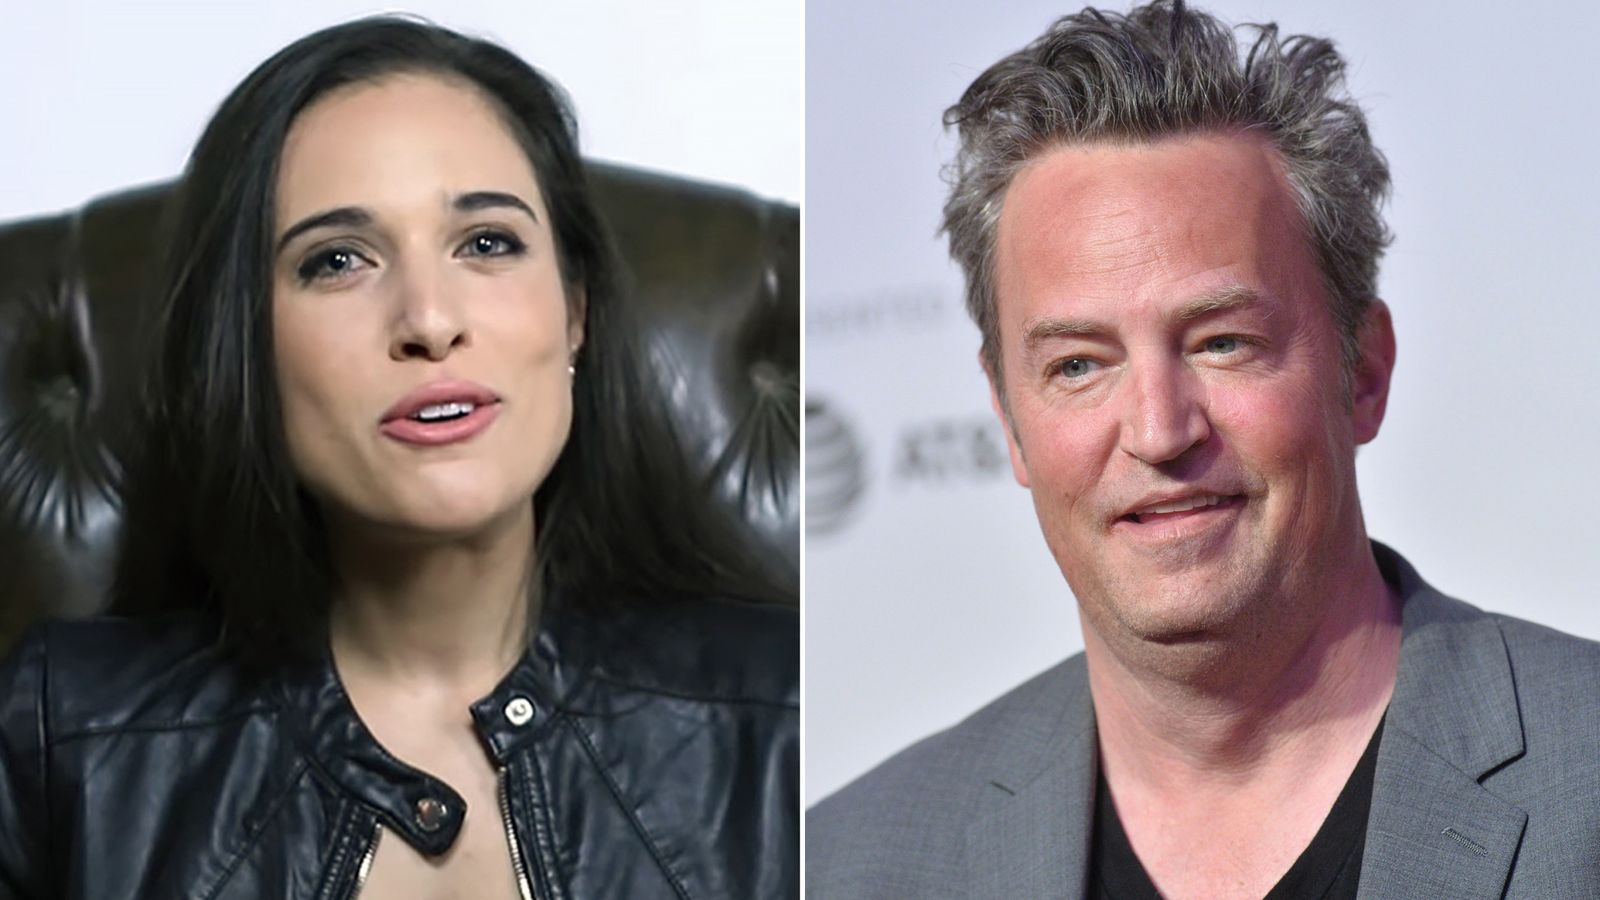 Matthew Perry splits from fiancée Molly Hurwitz days after Friends reunion airs